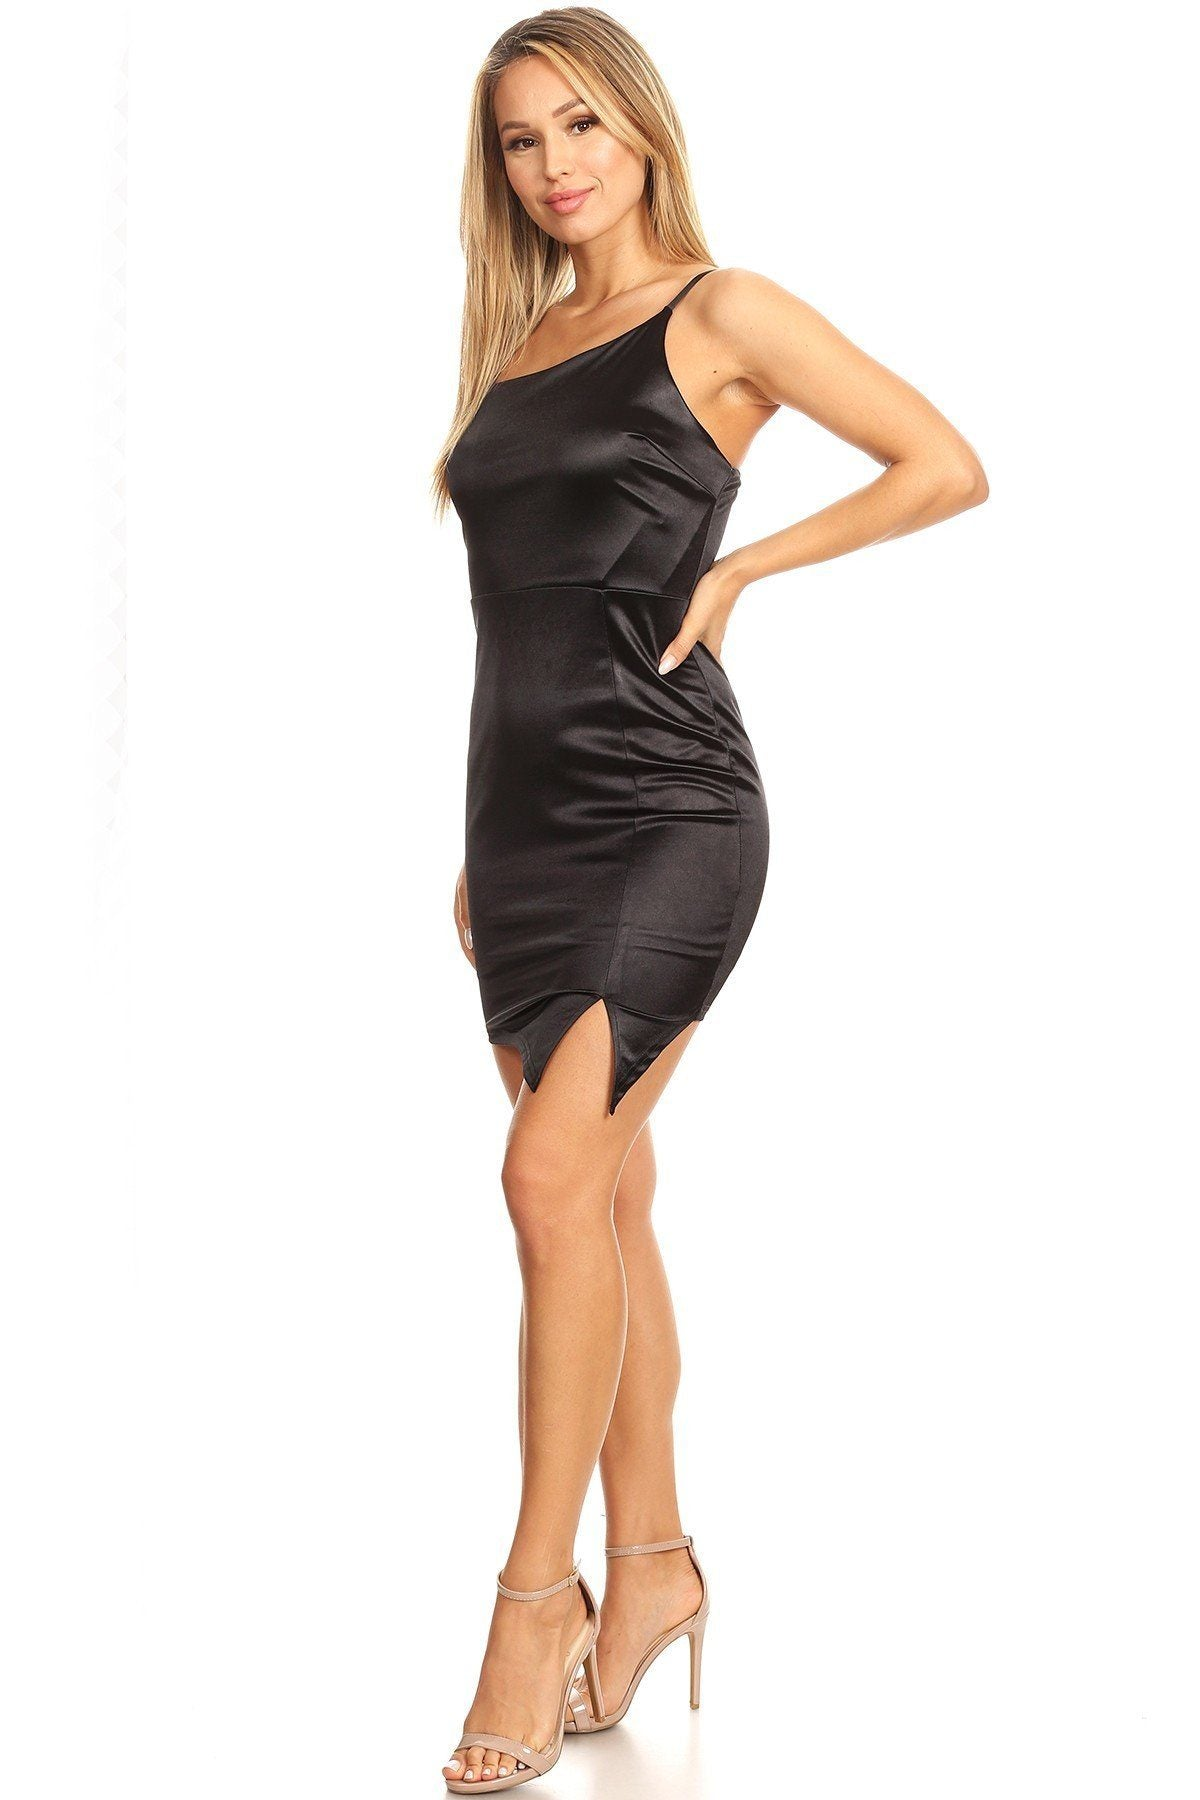 Solid Mini Dress With Bodycon Fit, Side Slit, And Spaghetti Straps